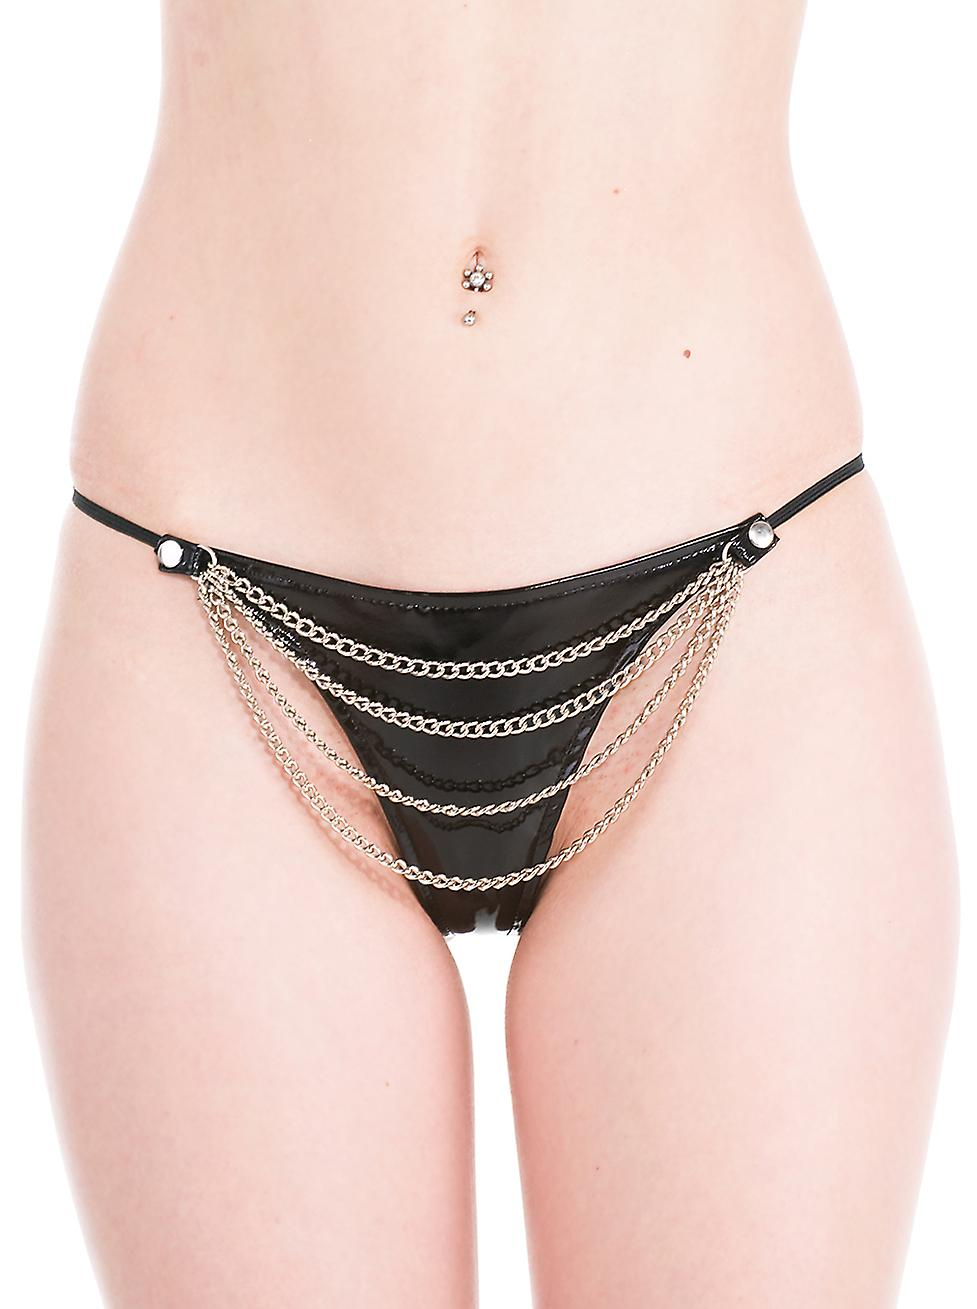 Honour Women's Naughty Thong in PVC Black Rock Chick Sexy Bedroom Lingerie